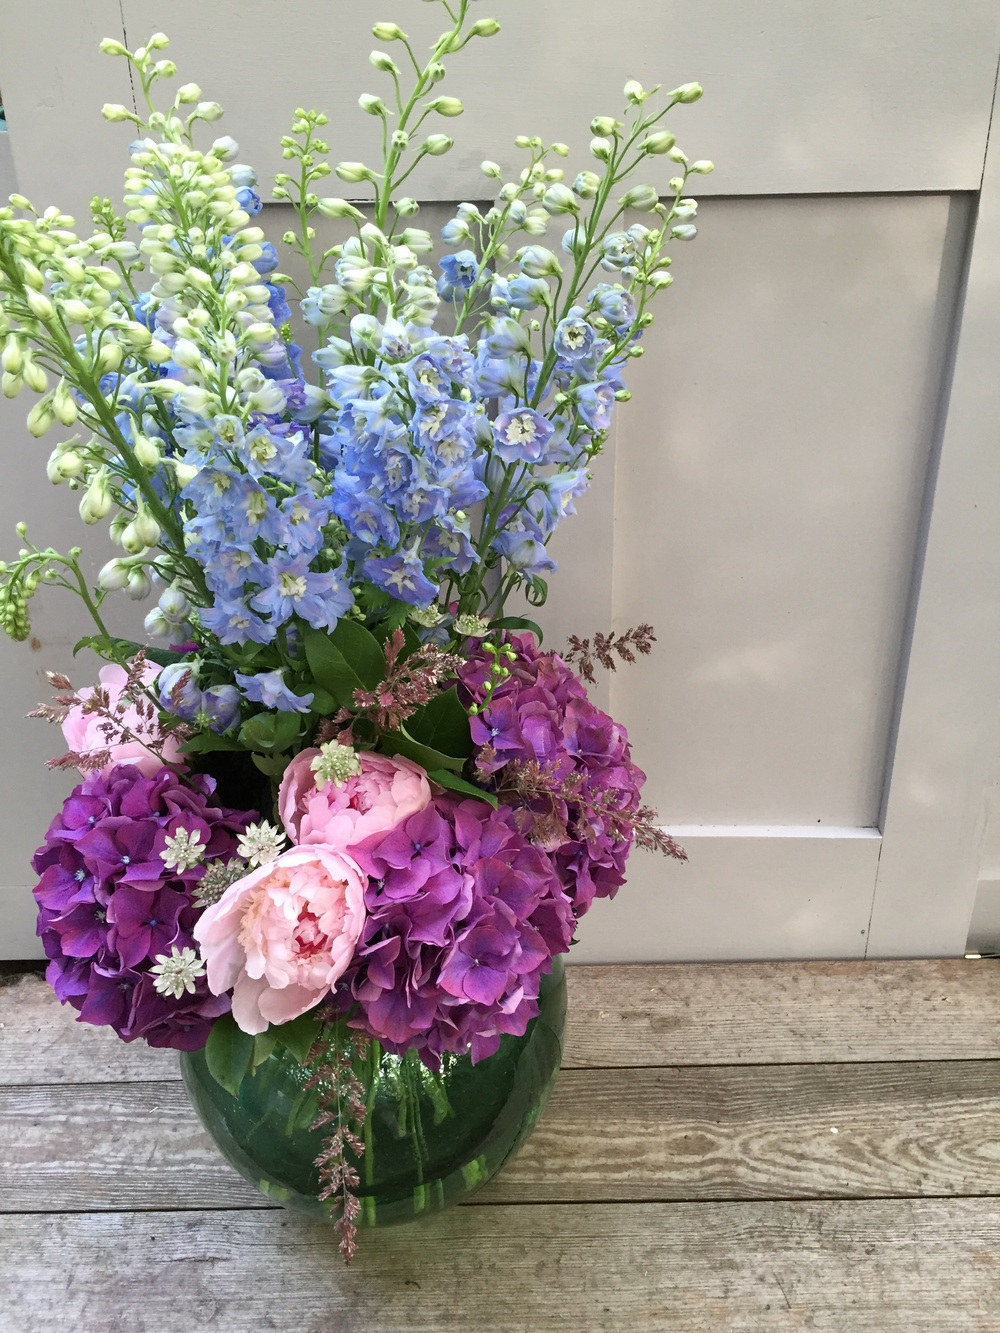 Delphiniums, hydrangea, peonies, astrantia and grasses.